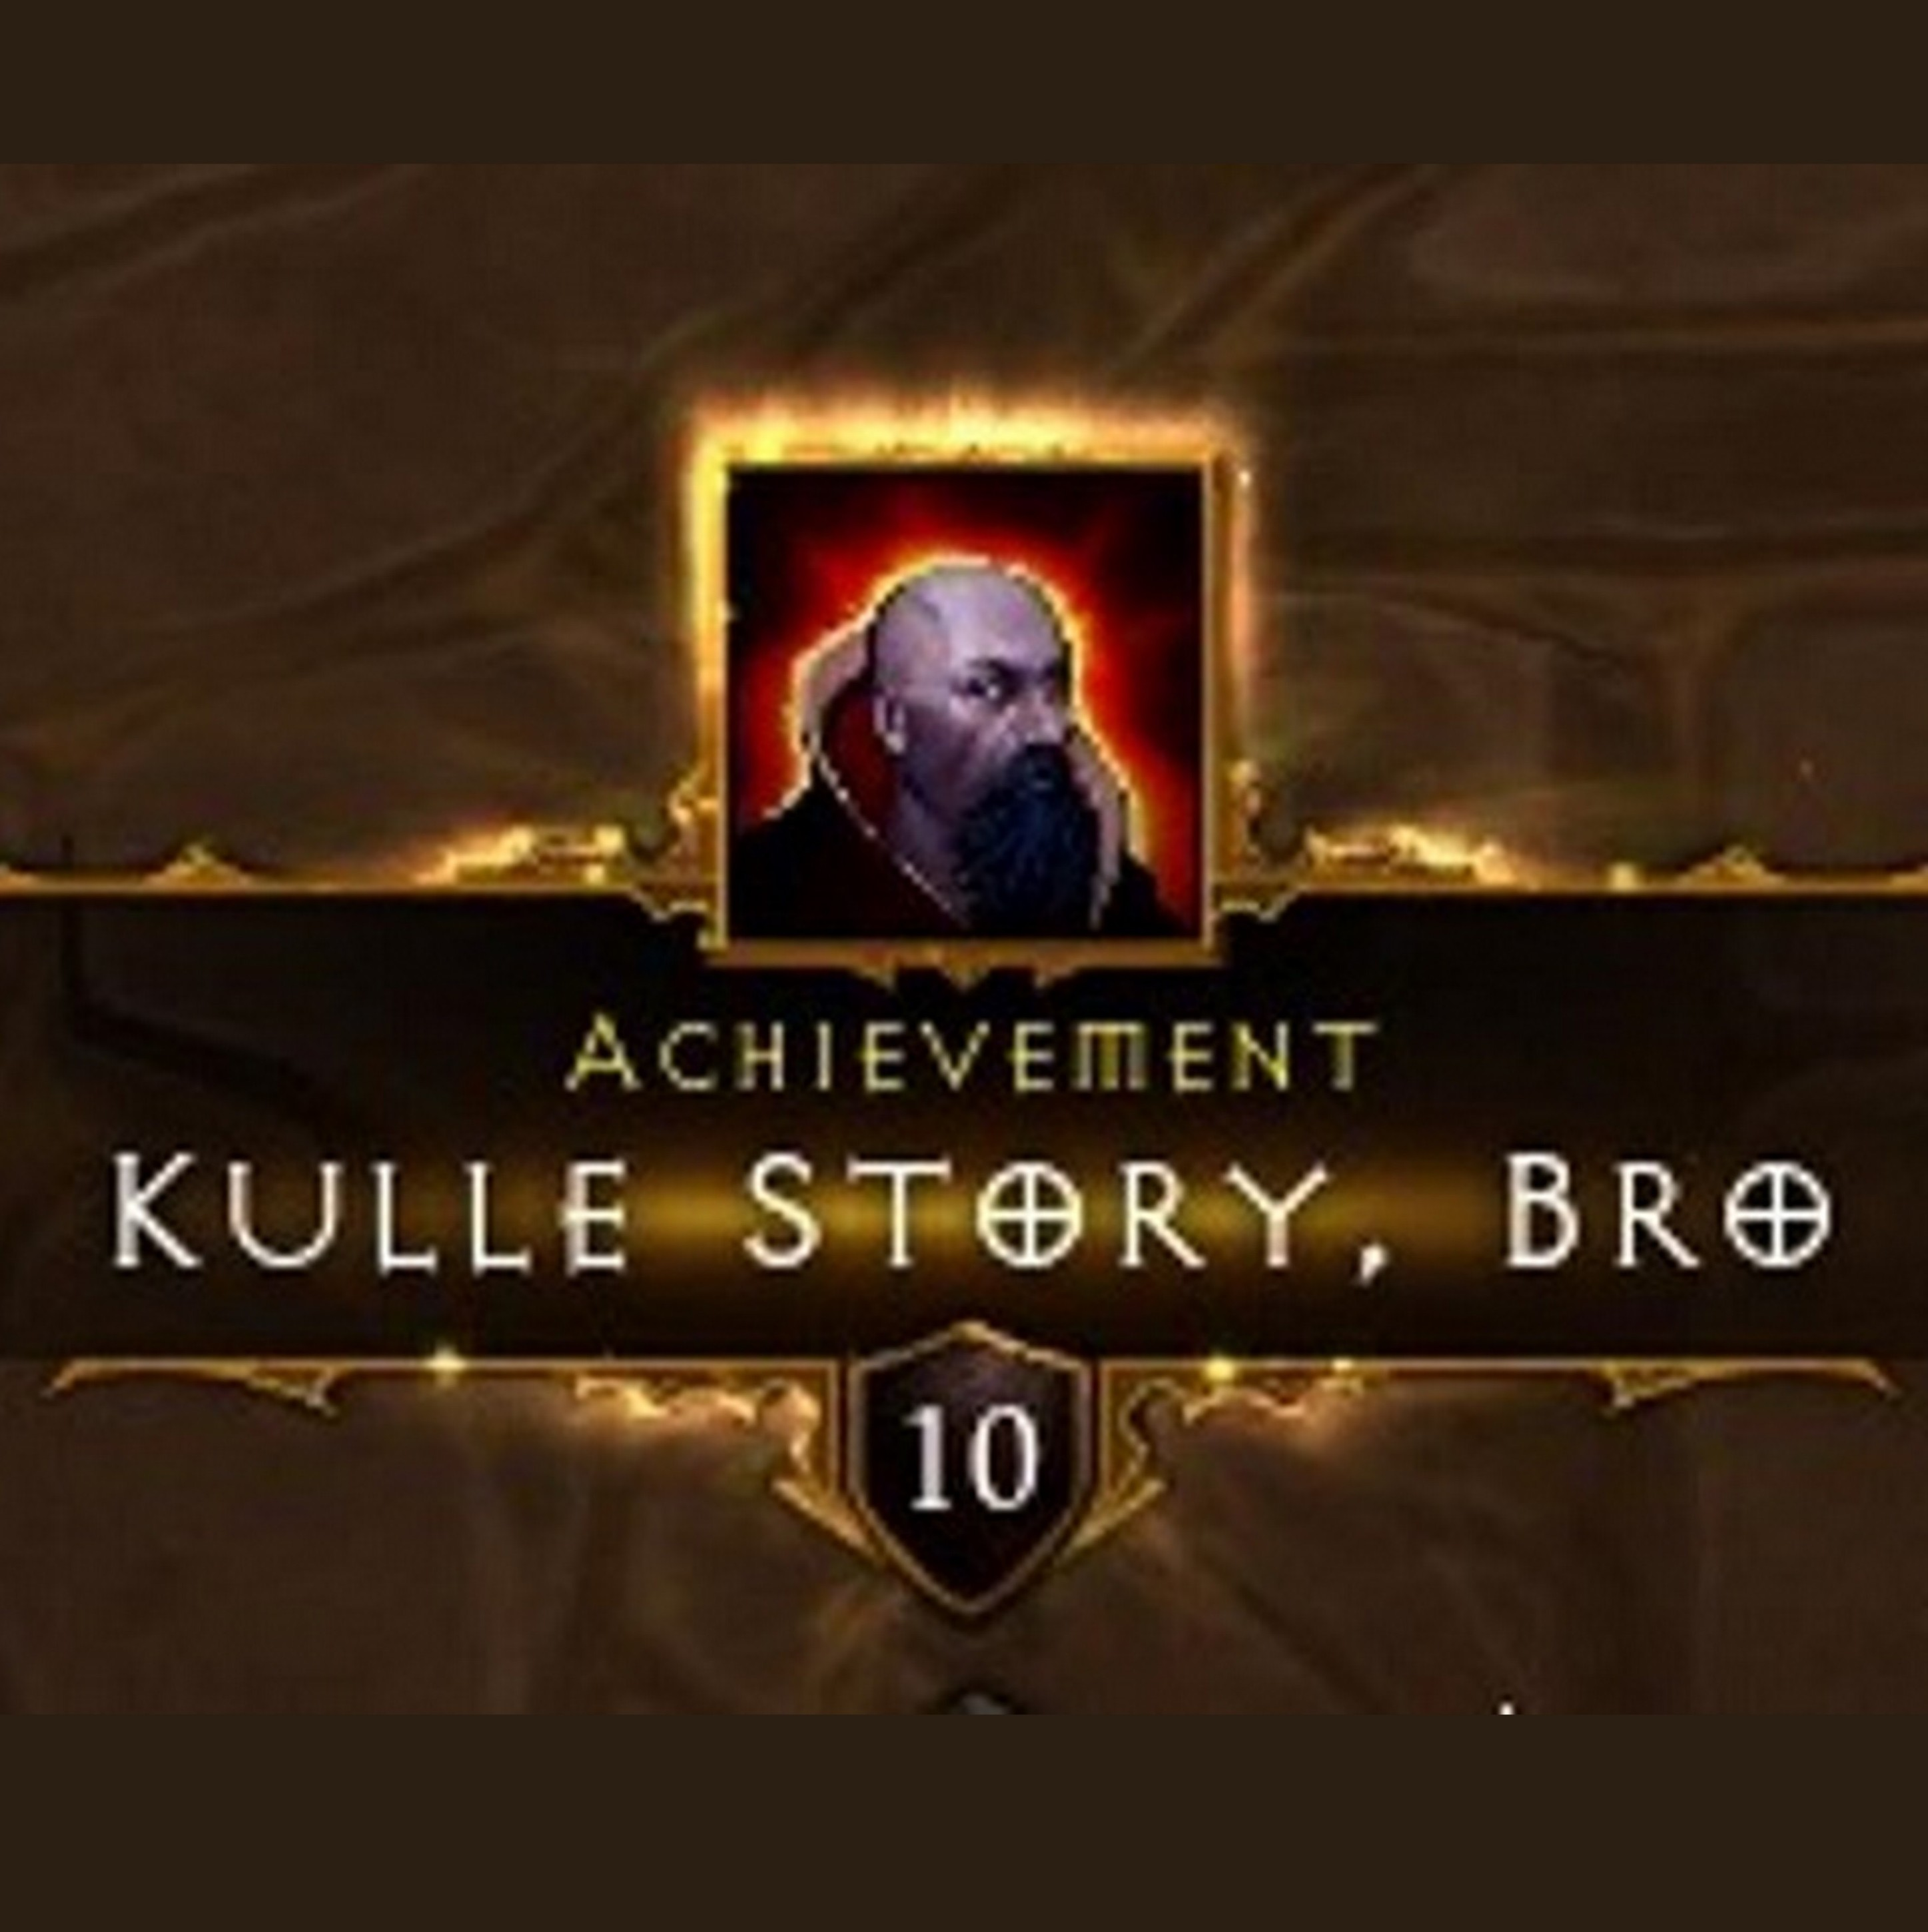 Kulle Story Bro - A Diablo 3 Podcast Episode 31